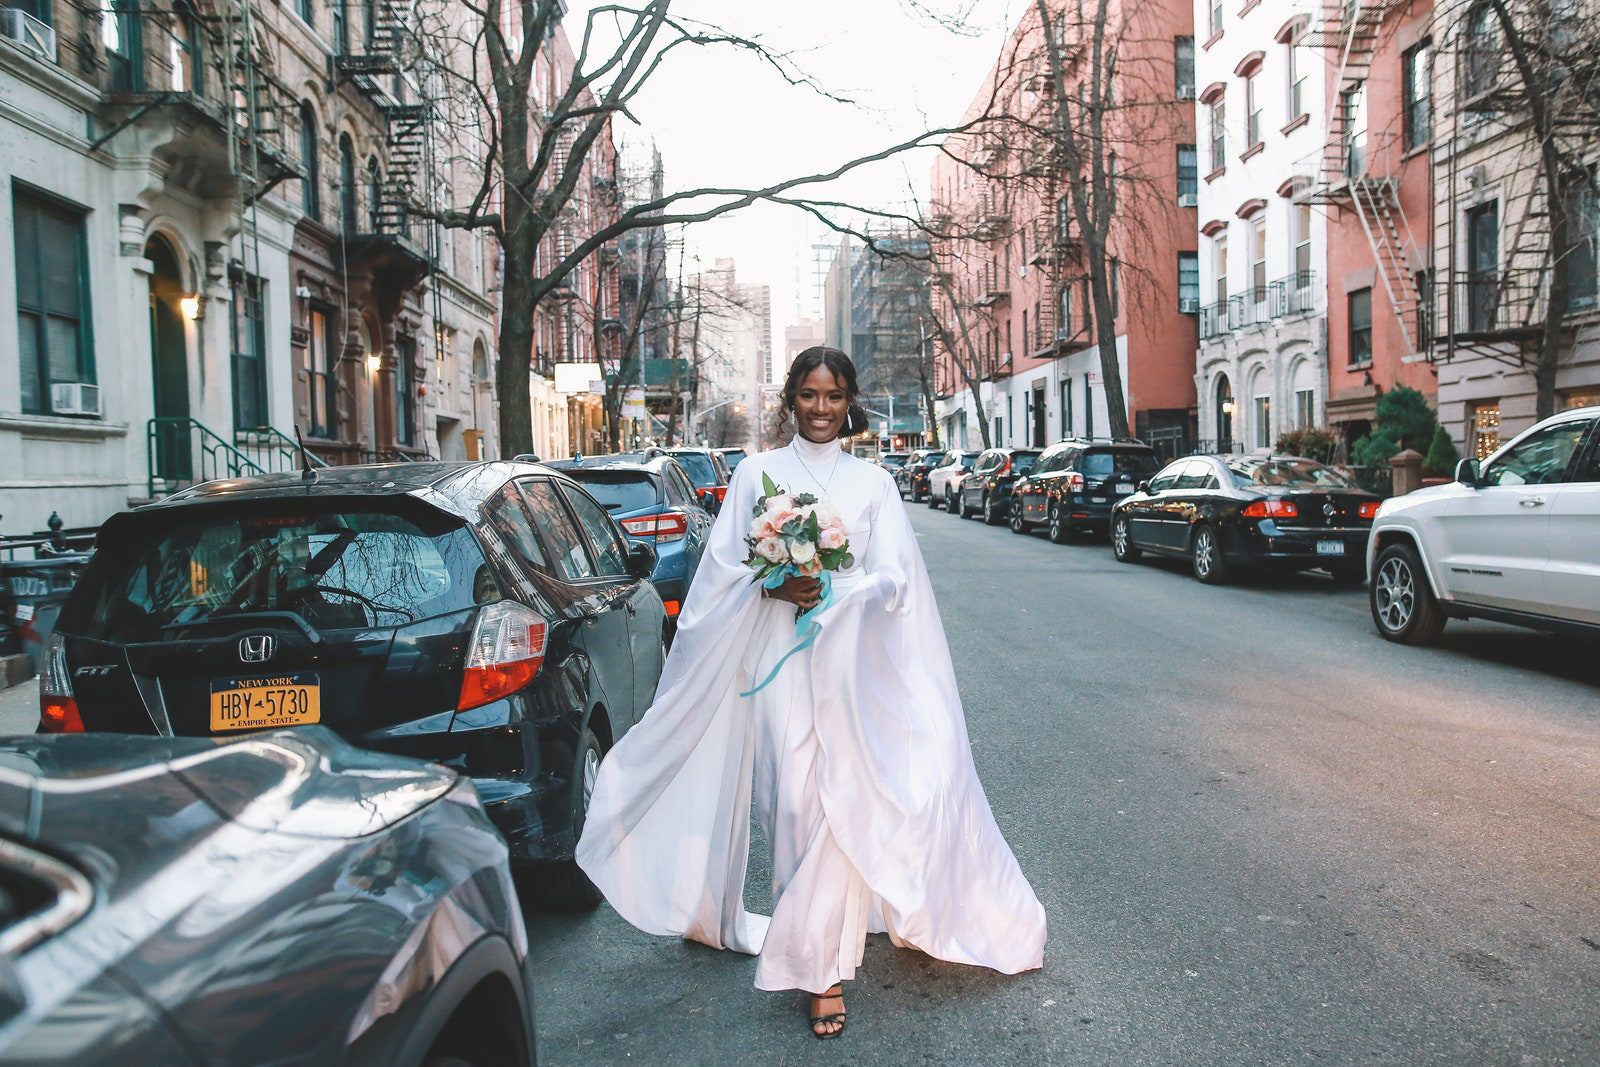 After Marrying At City Hall Model Aweng Ade Chuol And Alexus Ade Chuol Commemorated The Day With Tattoos And Pizza In 2020 City Hall Wedding Nyc Wedding New York City Hall